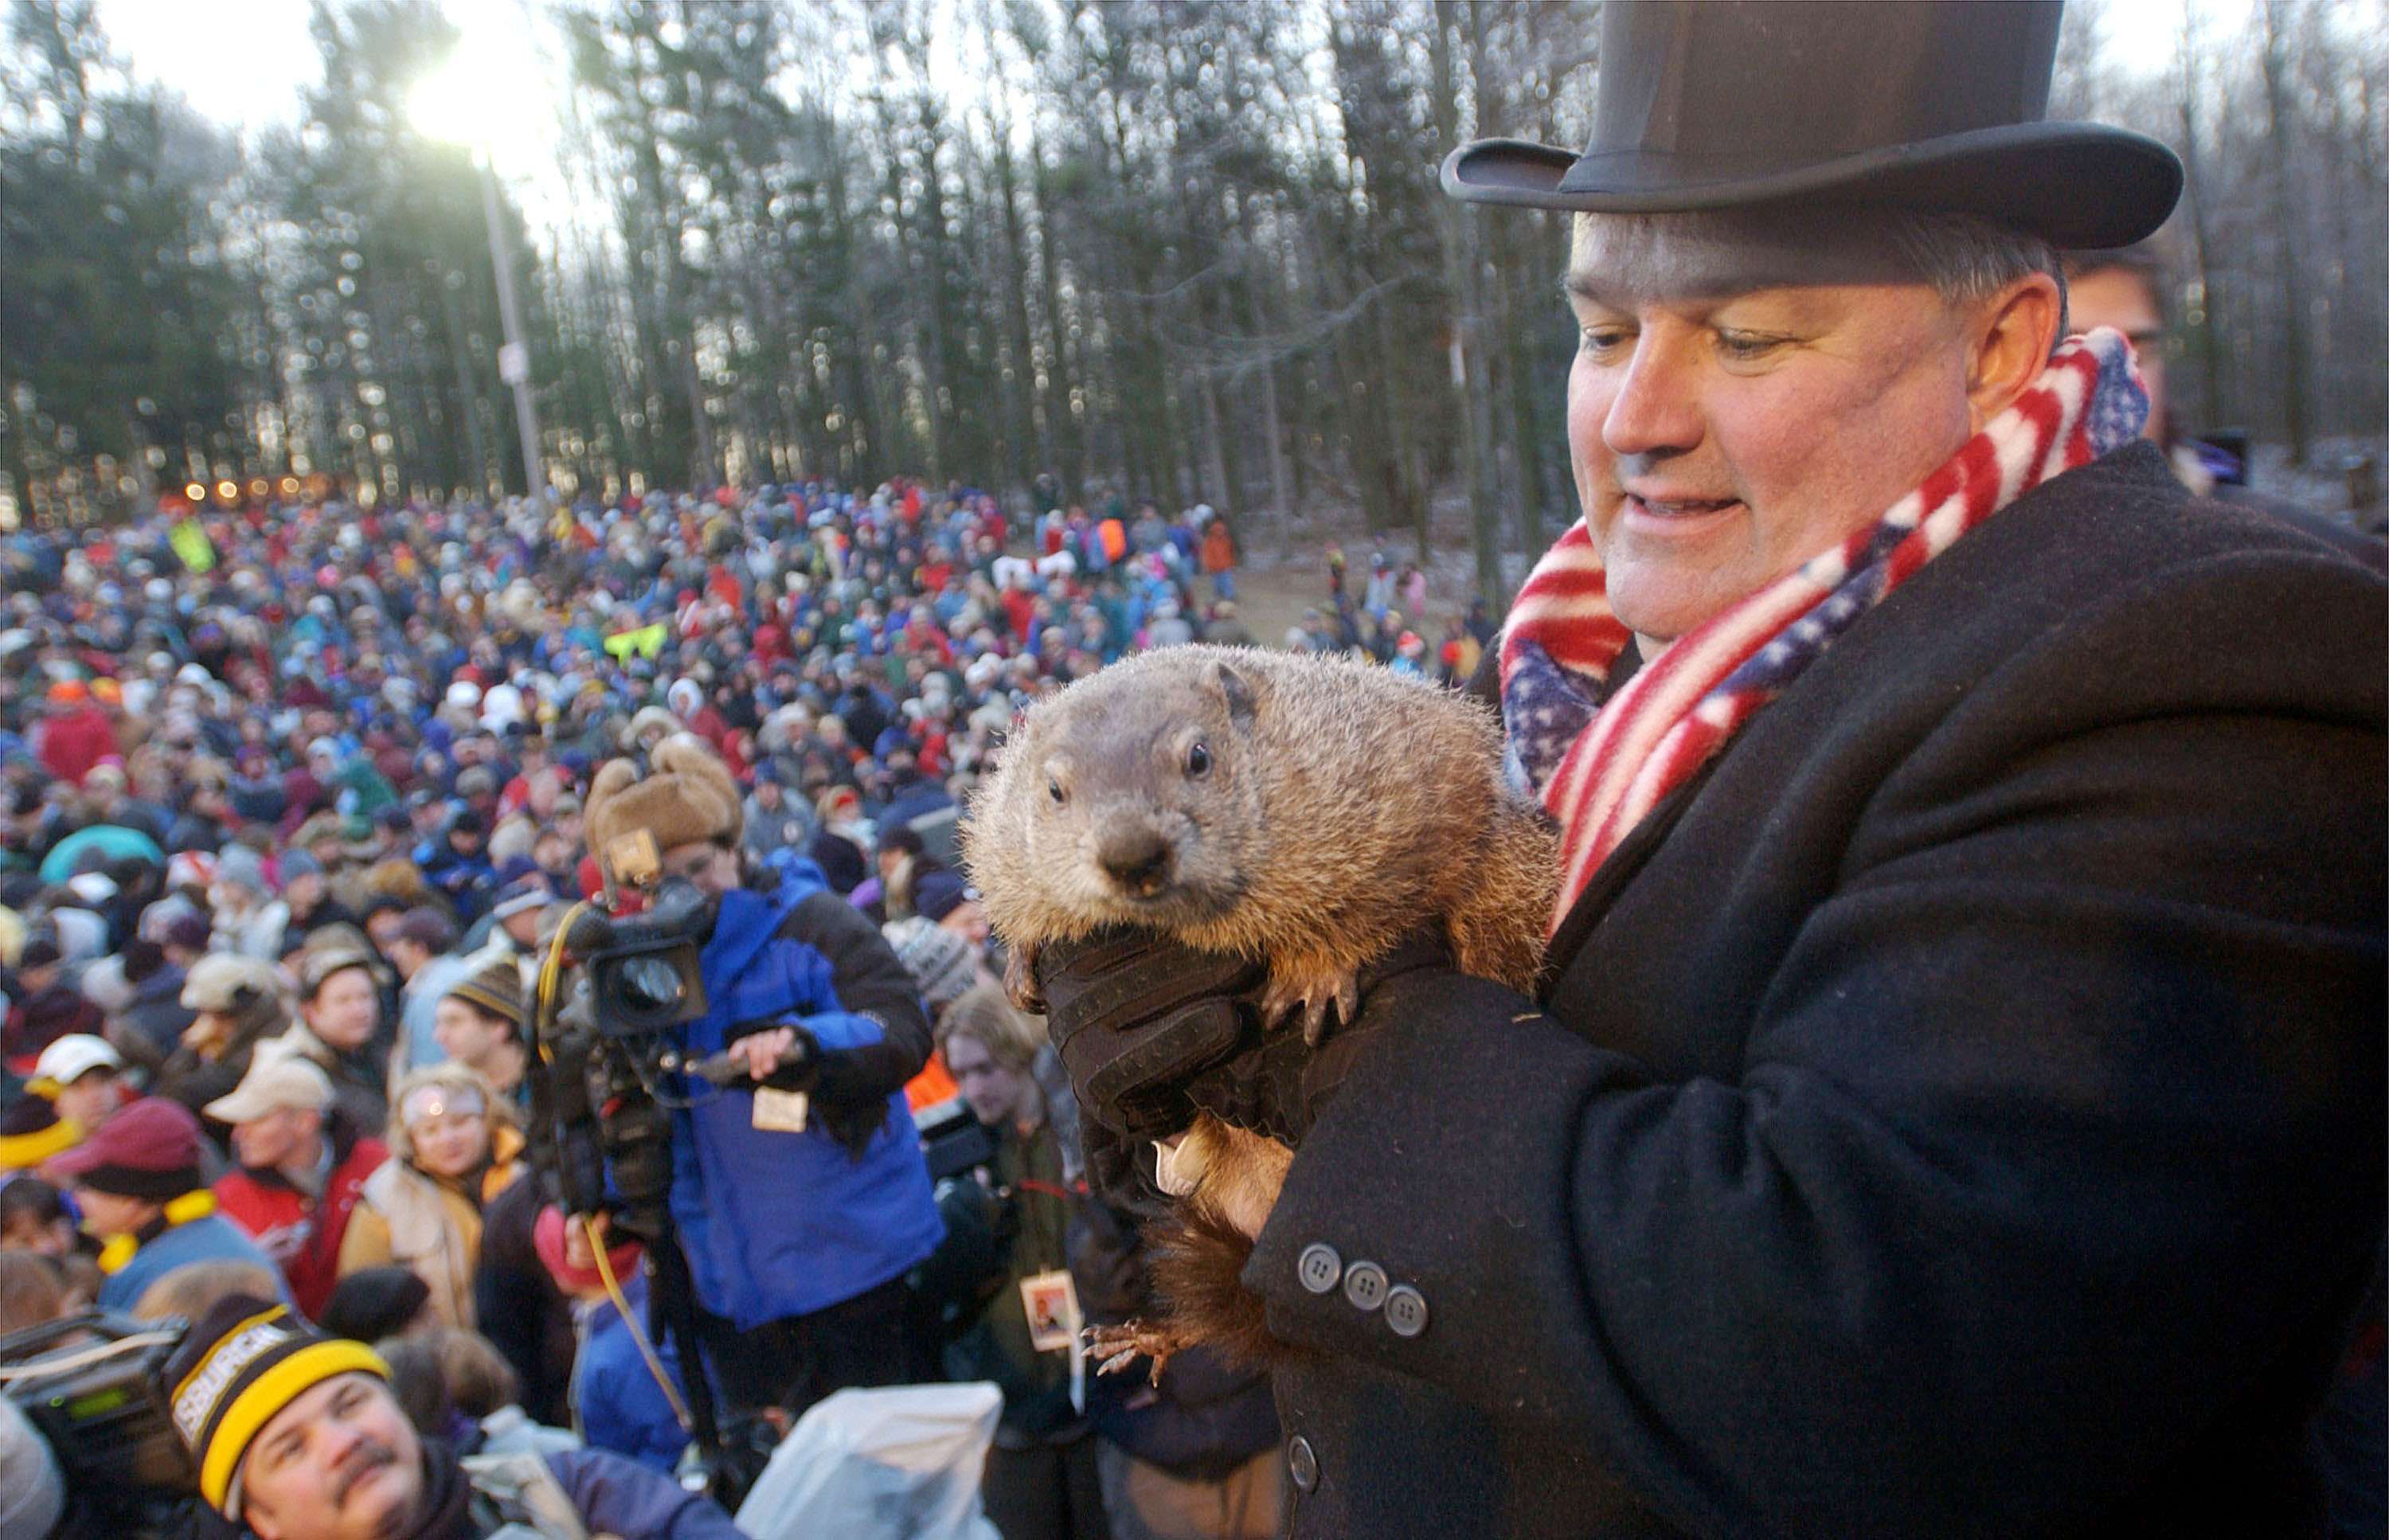 MORE WINTER: Punxsutawney Phil sees his shadow on Groundhog Day